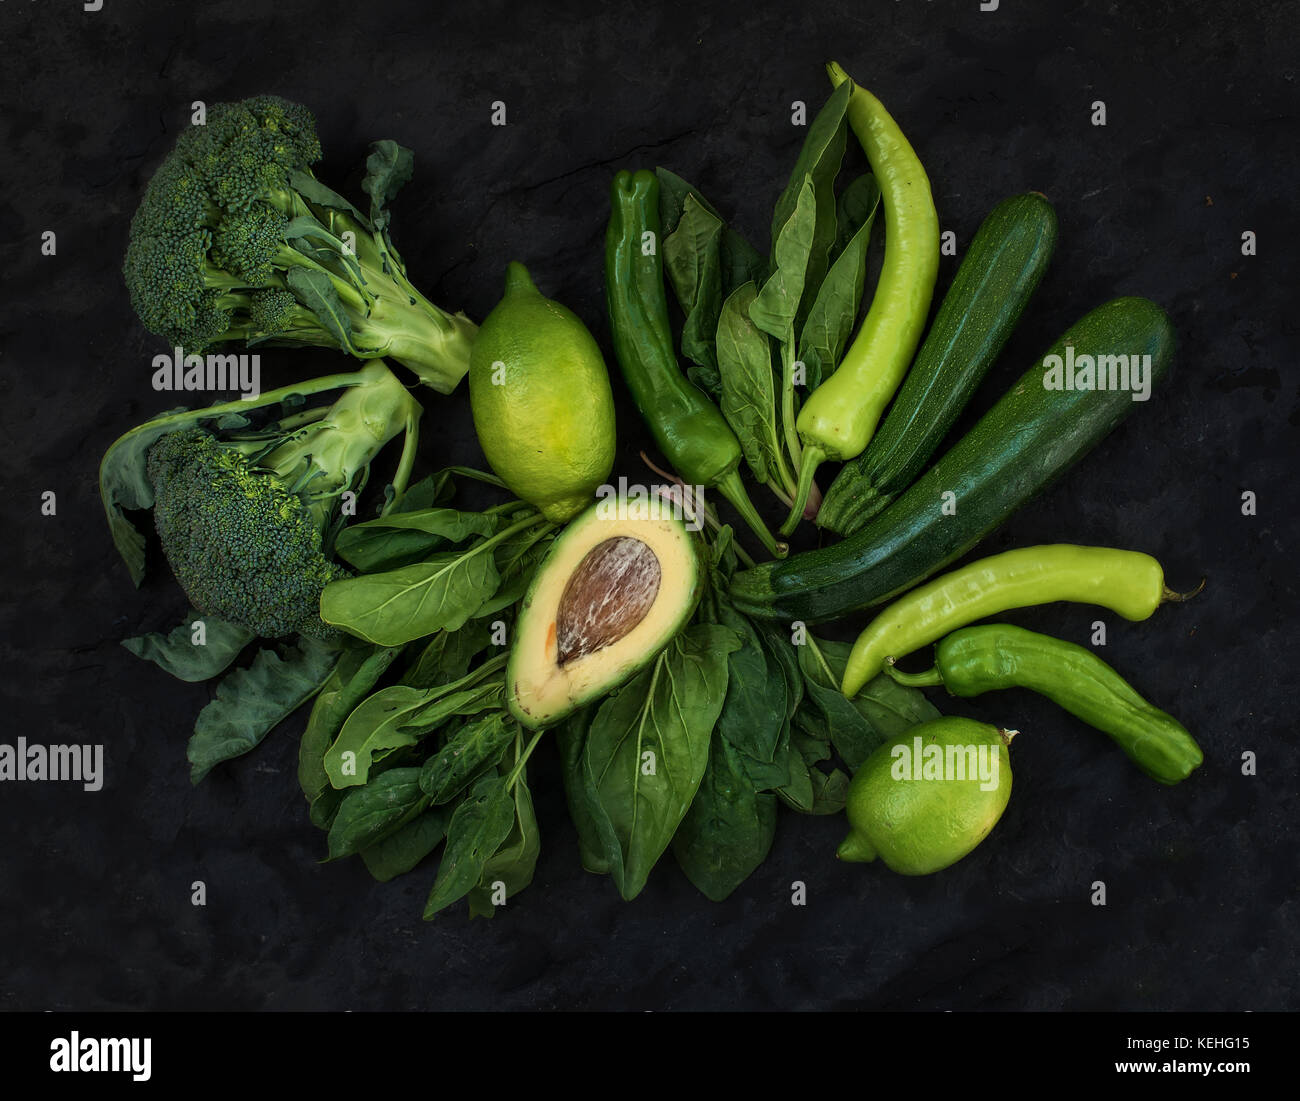 Raw green vegetables set. Broccoli, avocado, pepper, spinach, zuccini and lime on  dark stone background, top view - Stock Image